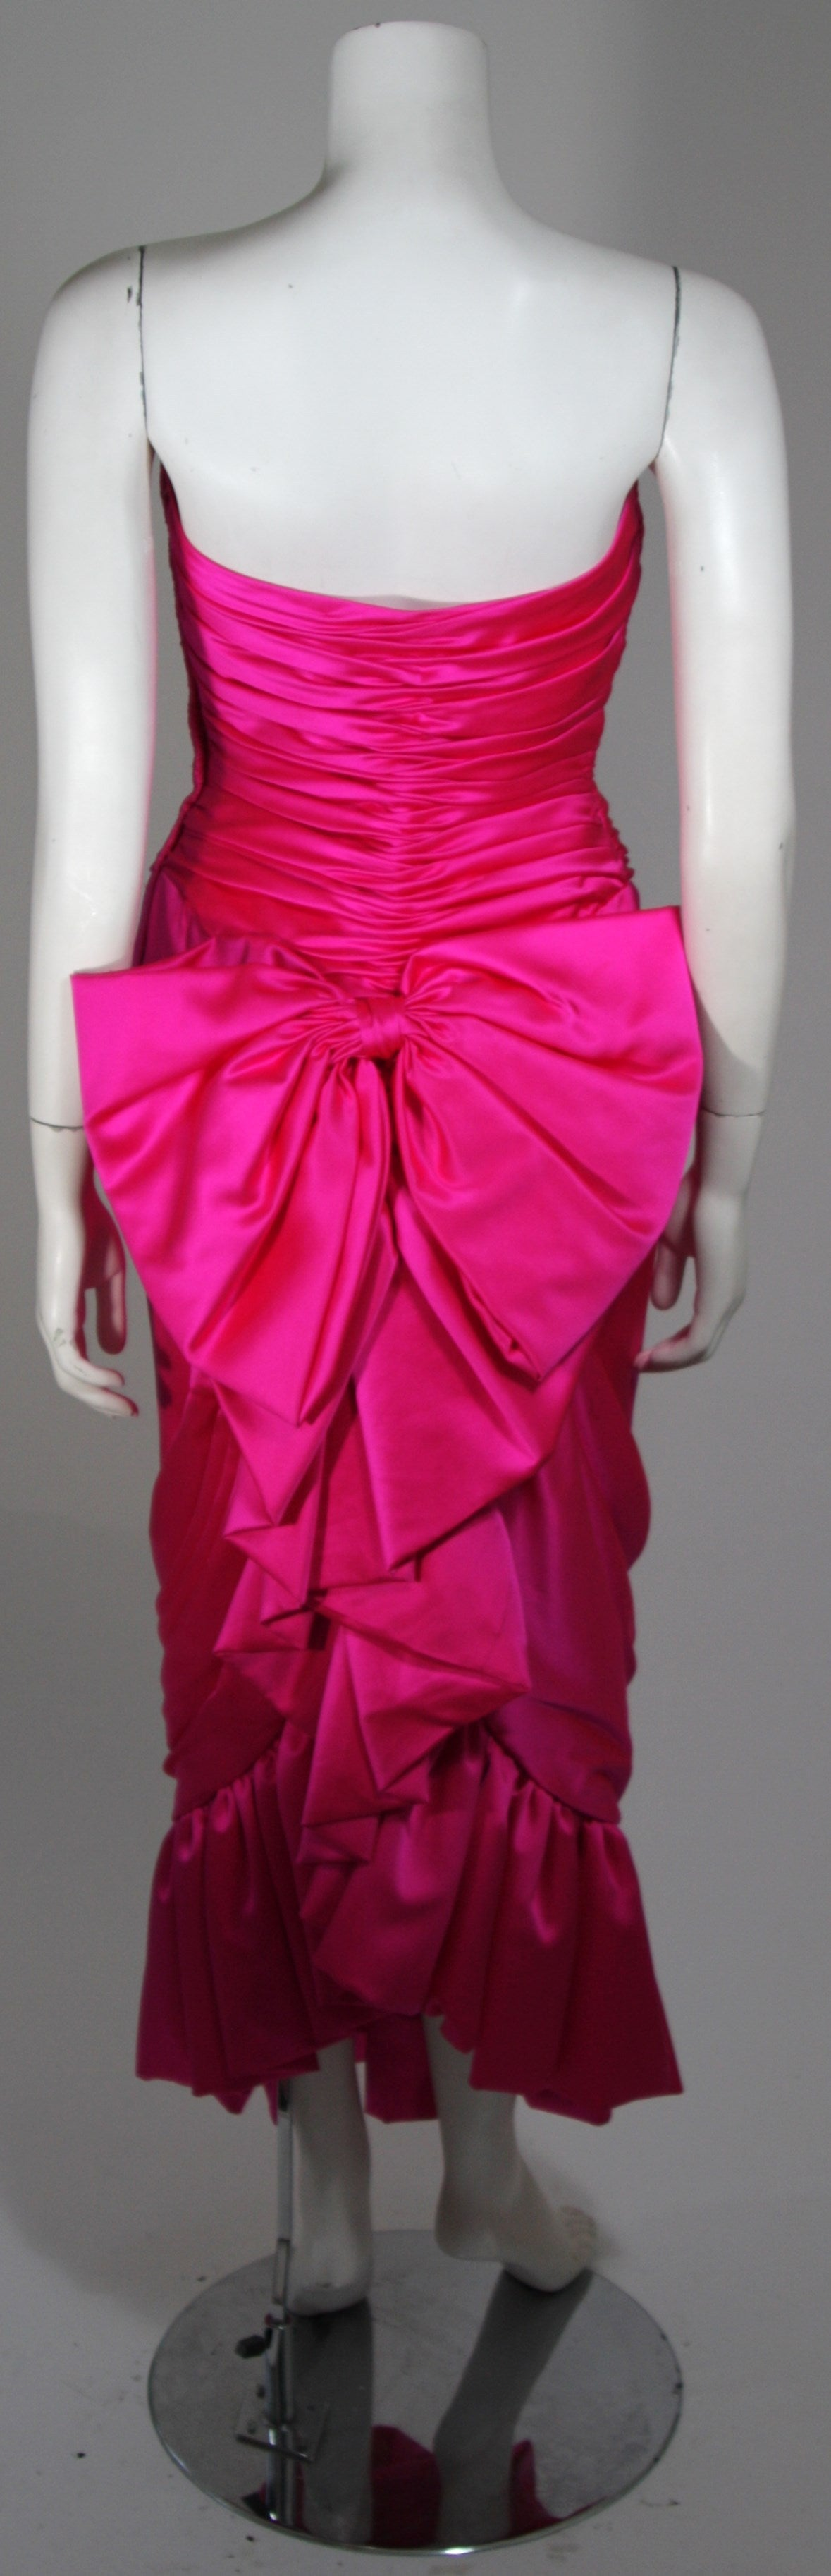 Vicky Tiel Magenta Gown with Large Bow Size Small 5